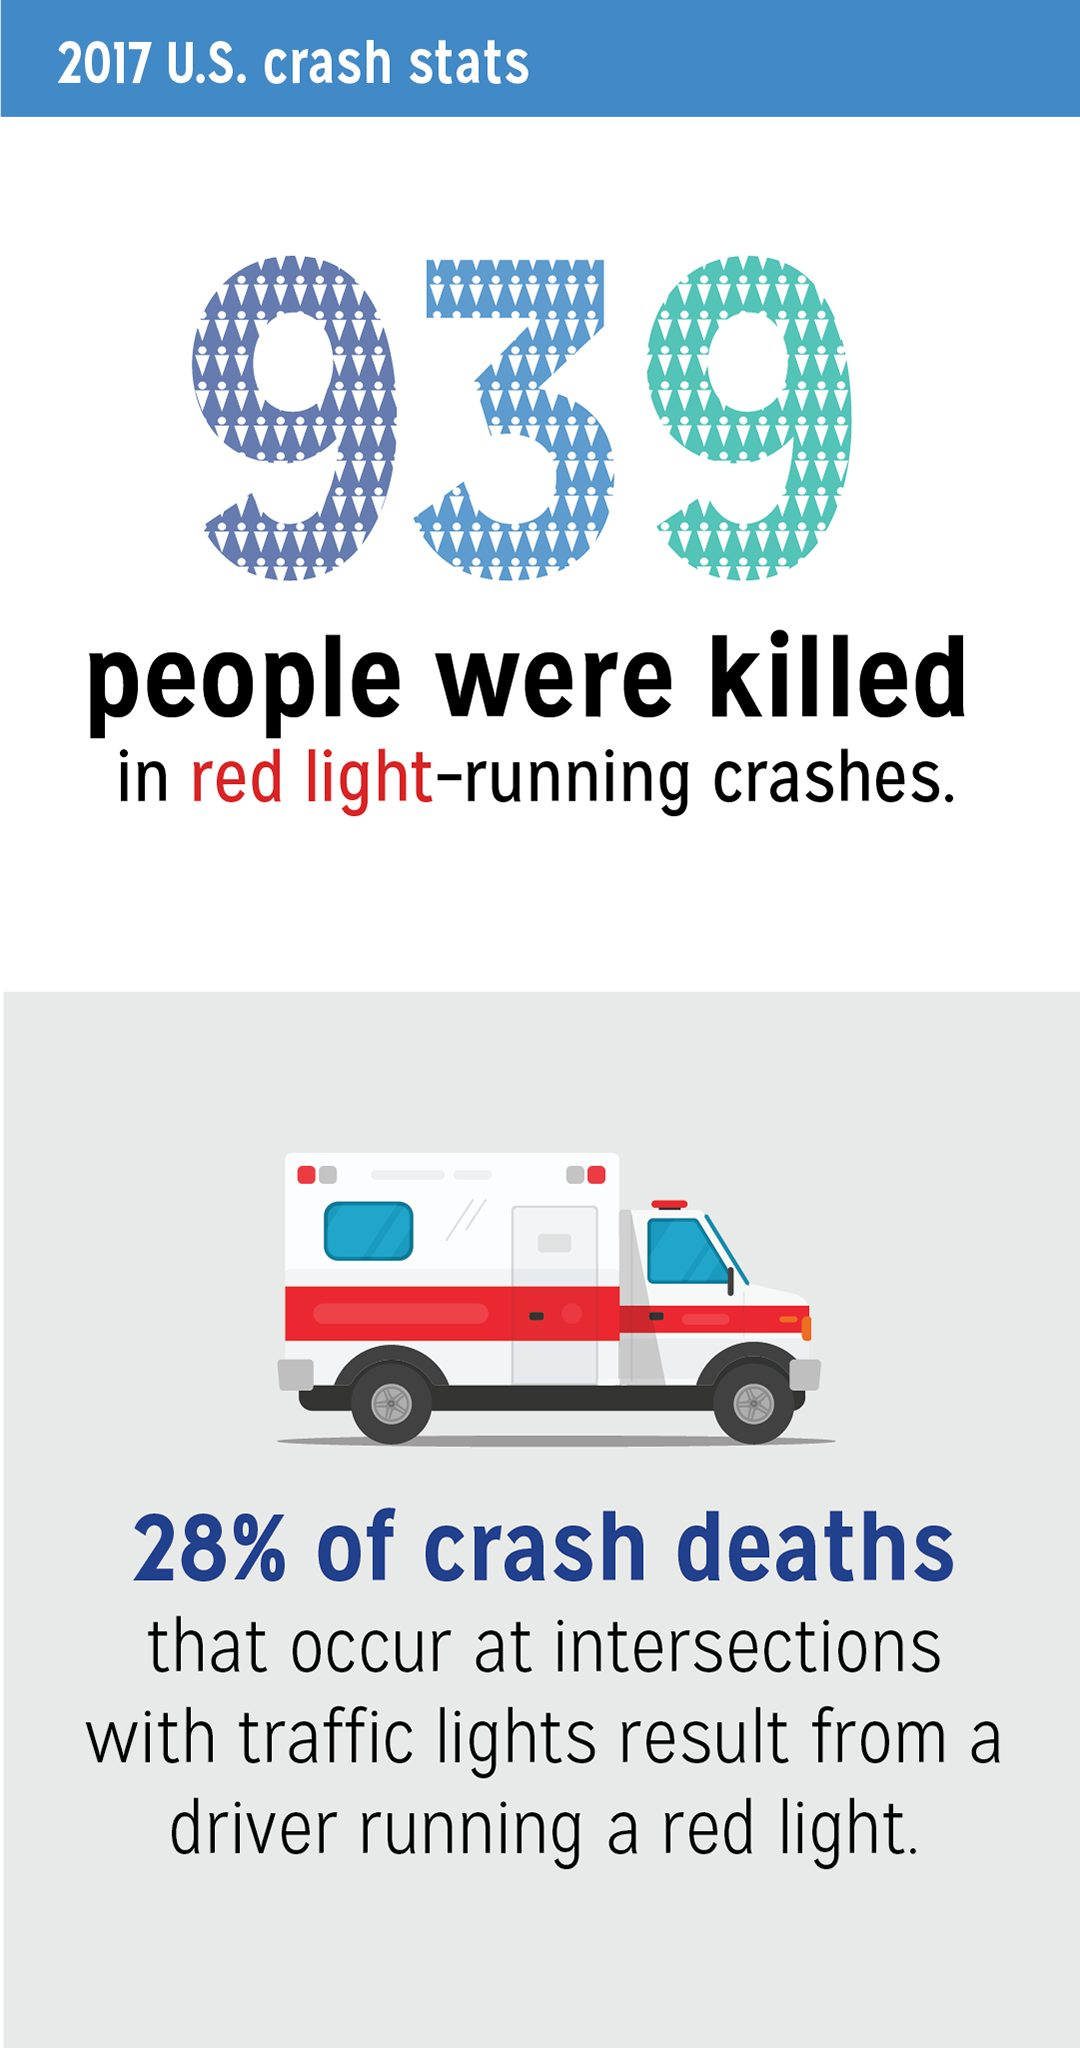 running-red-light-statistics-tips-infographic